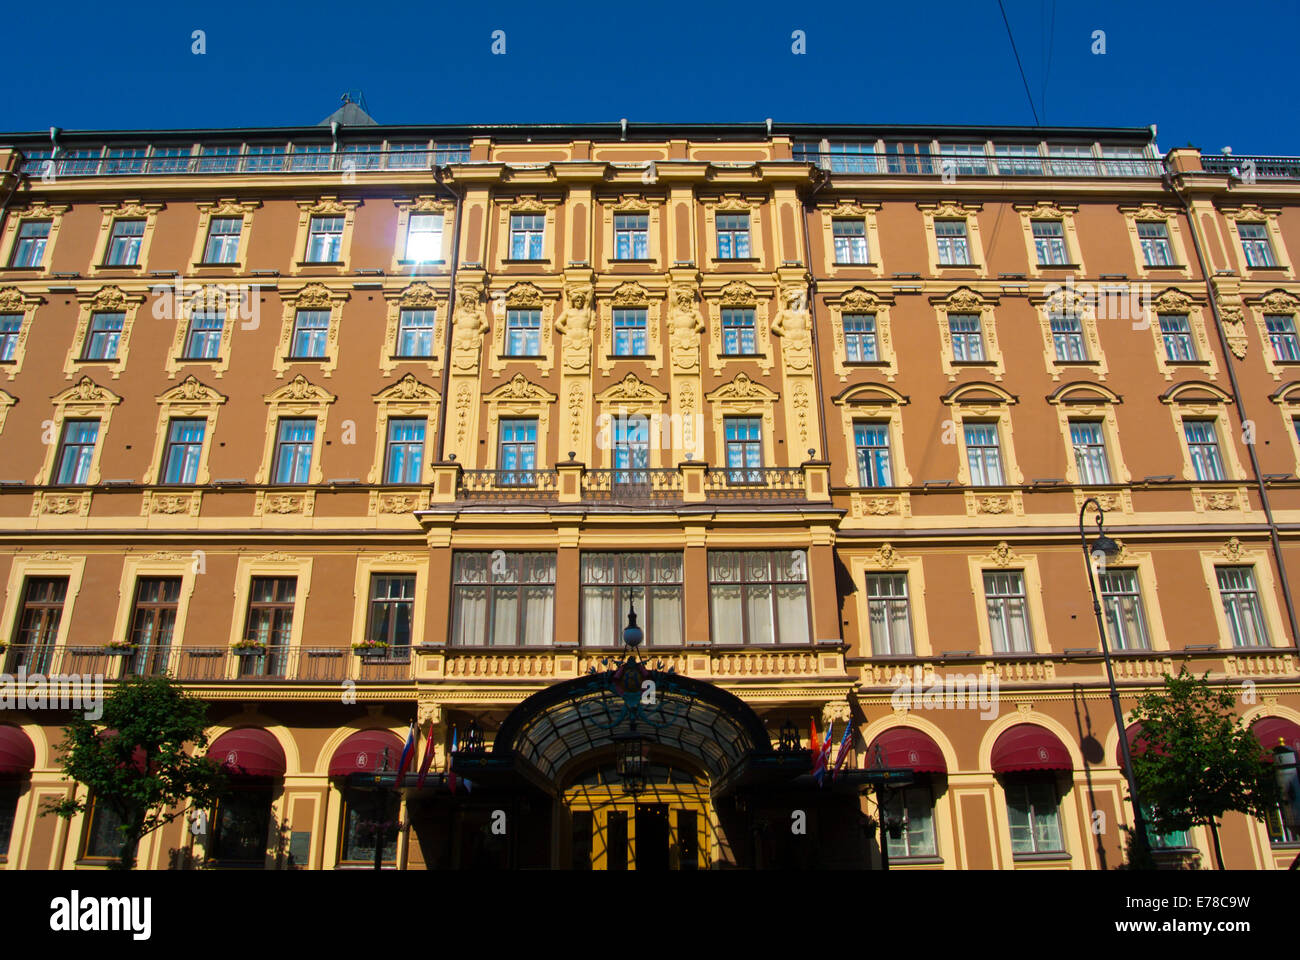 Grand Hotel Europa, central Saint Petersburg, Russia, Europe - Stock Image